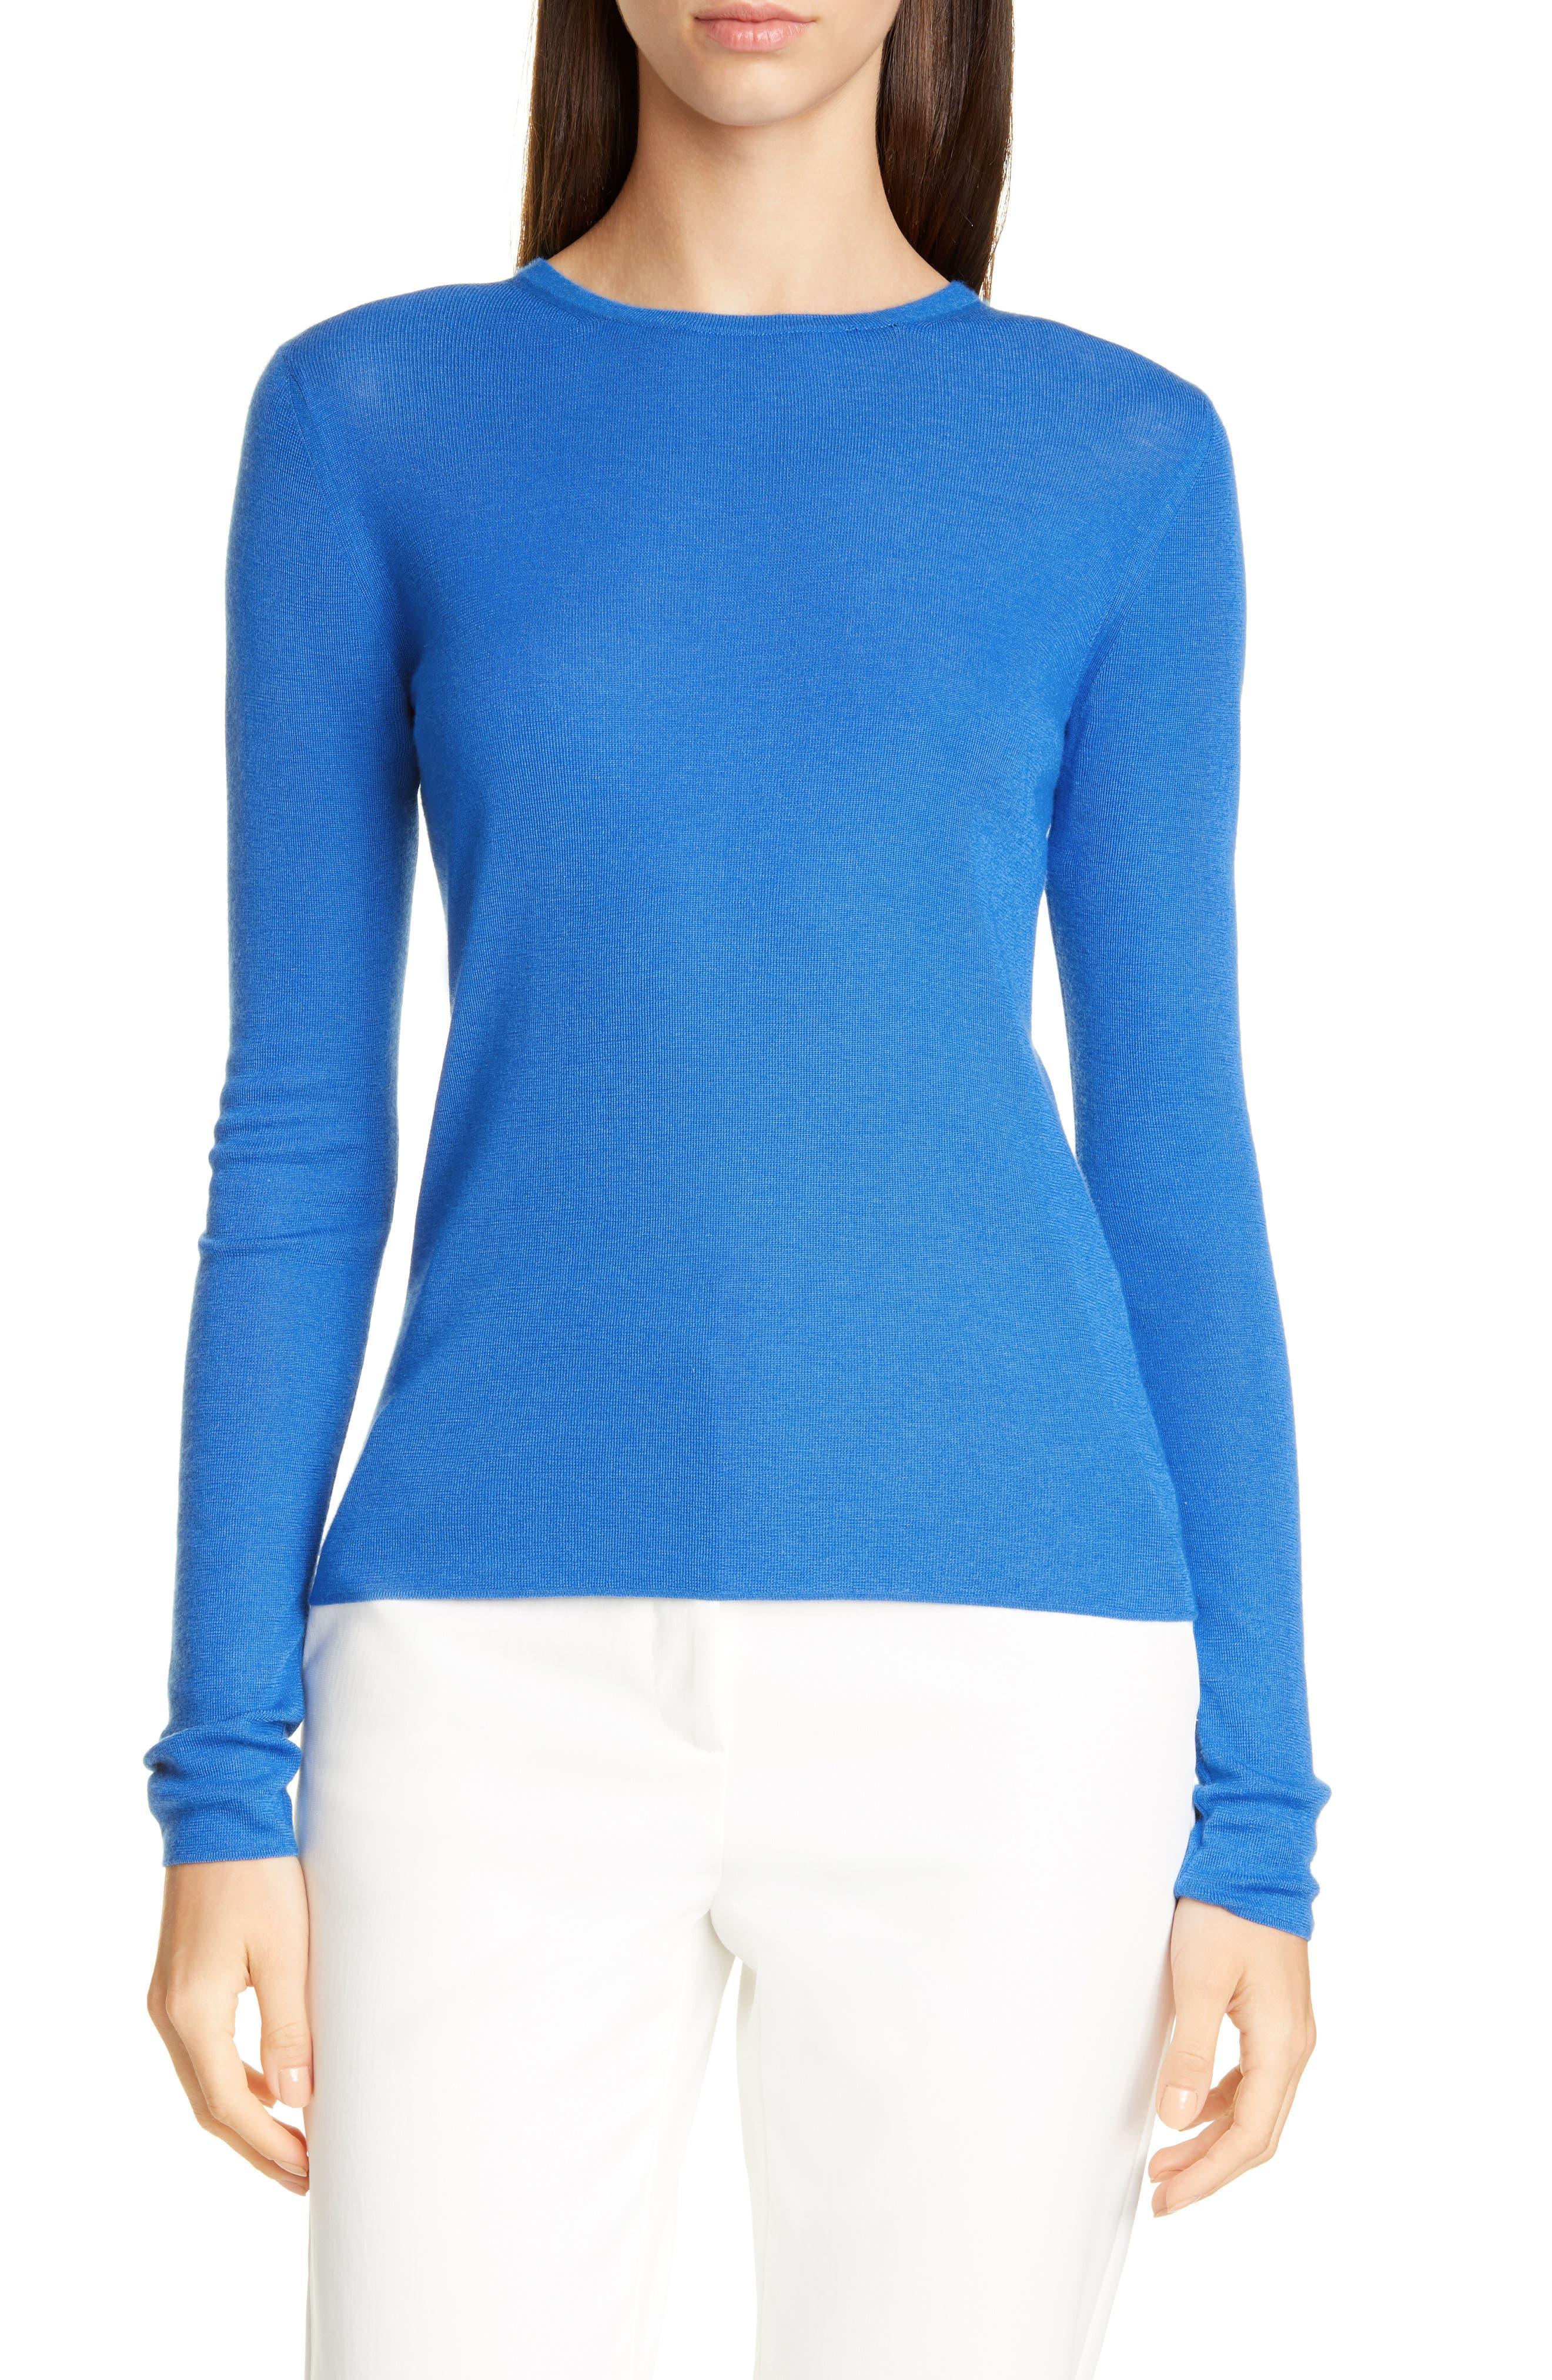 Image of St. John Collection Refined Cashmere Silk Rib Full Sweater